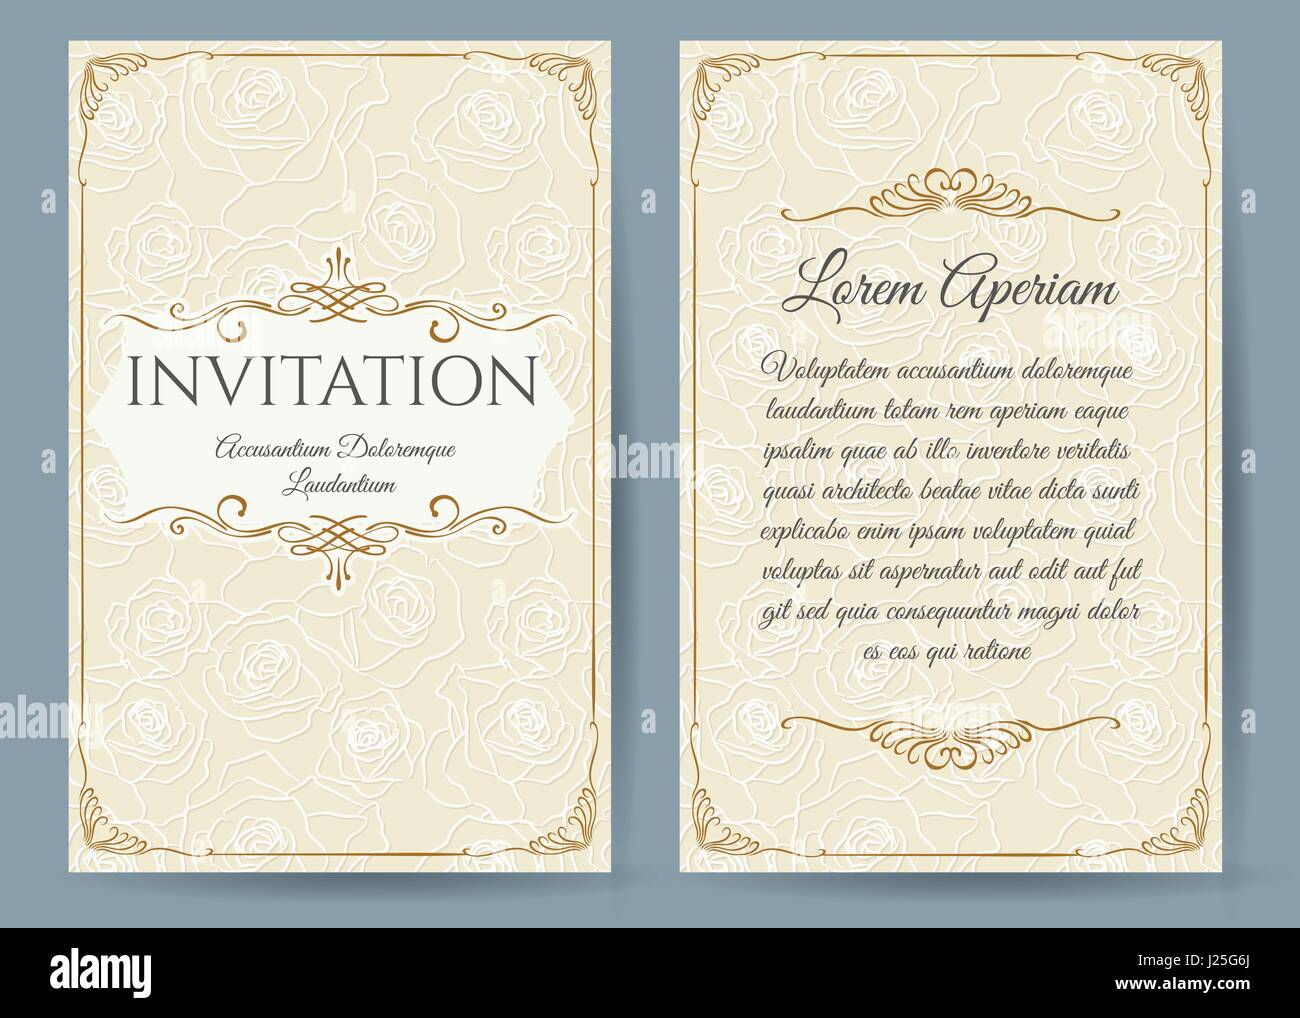 Baroque invitation card in vintage style floral decorative baroque invitation card in vintage style floral decorative elements on rose flower background for anniversary stopboris Images